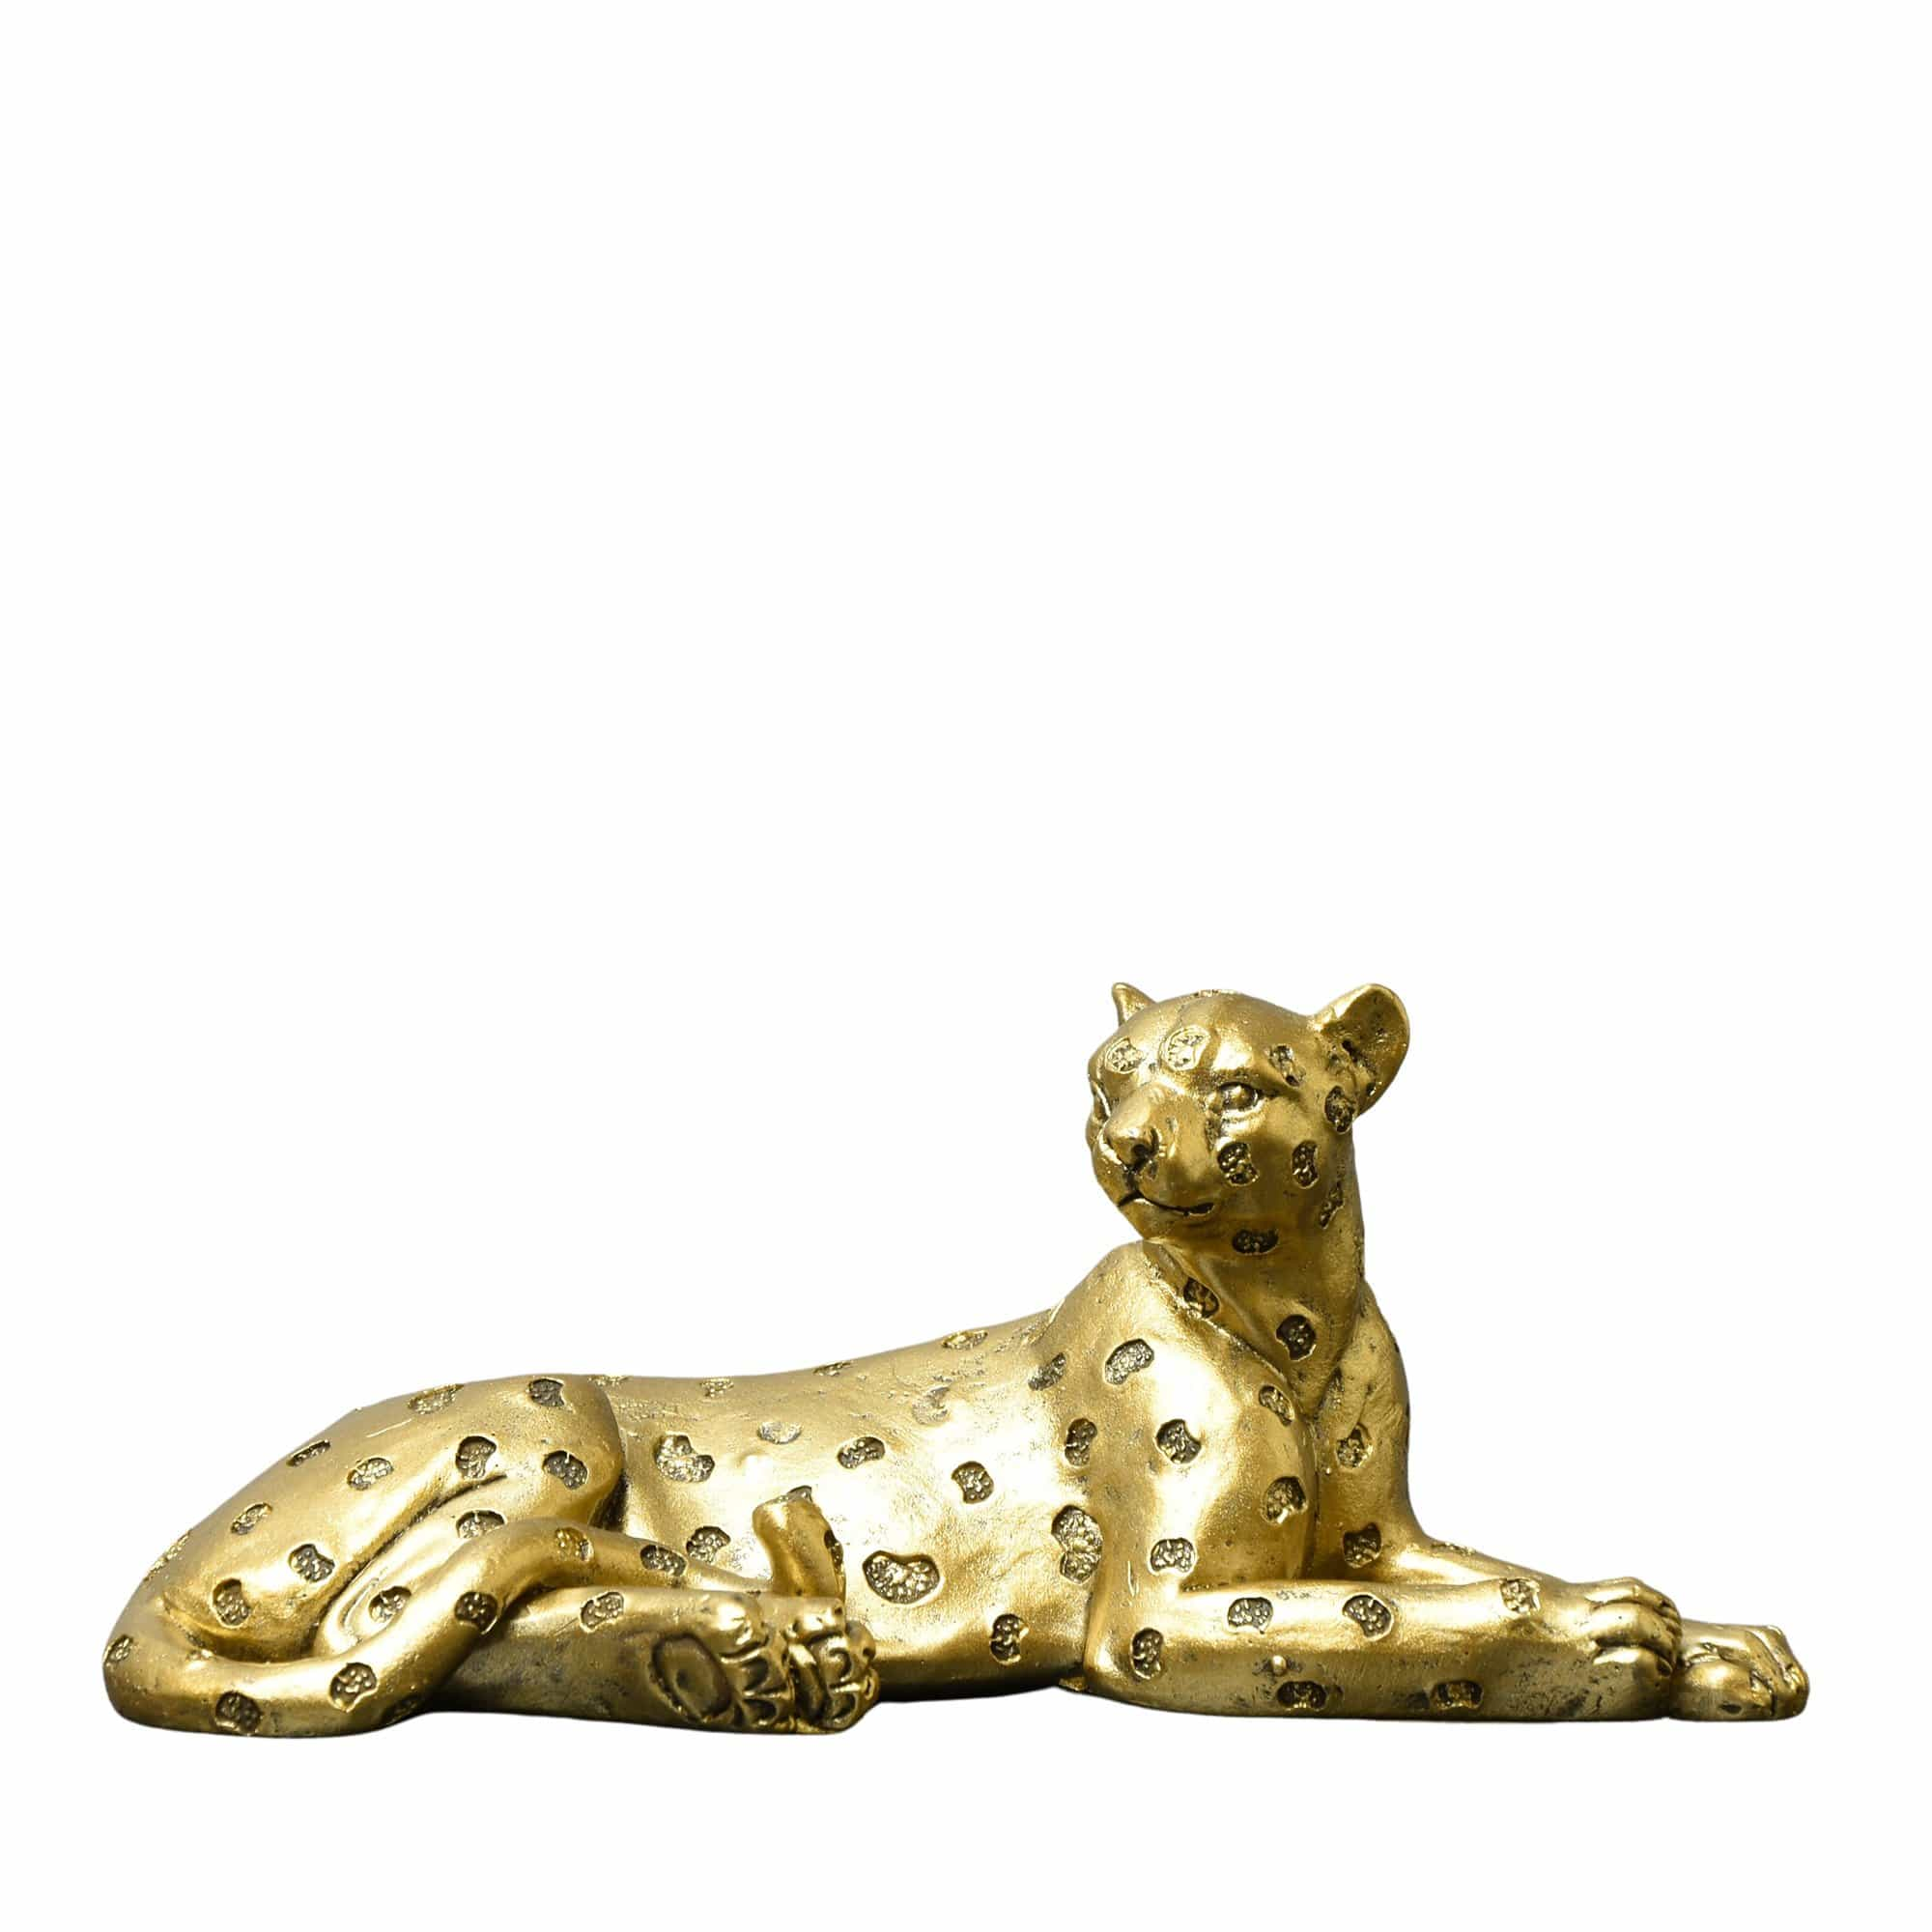 Candlelight Home Figures Laying Leopard Ornament Antique Gold 7cm 4PK